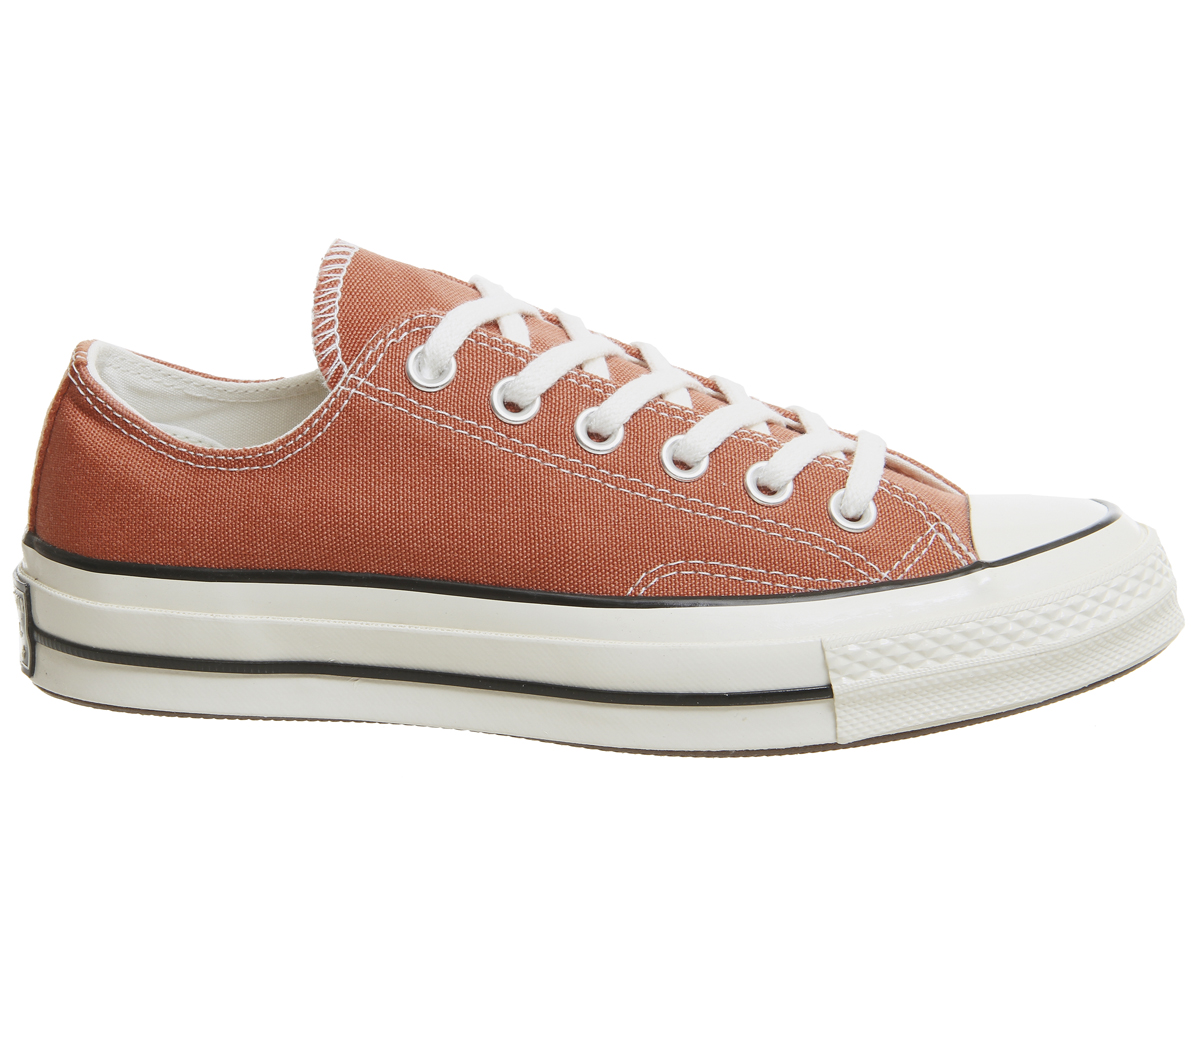 a3b85e6c292edf Sentinel Converse All Star Ox 70s Trainers TERRACOTTA RED BLACK EGRET  Trainers Shoes